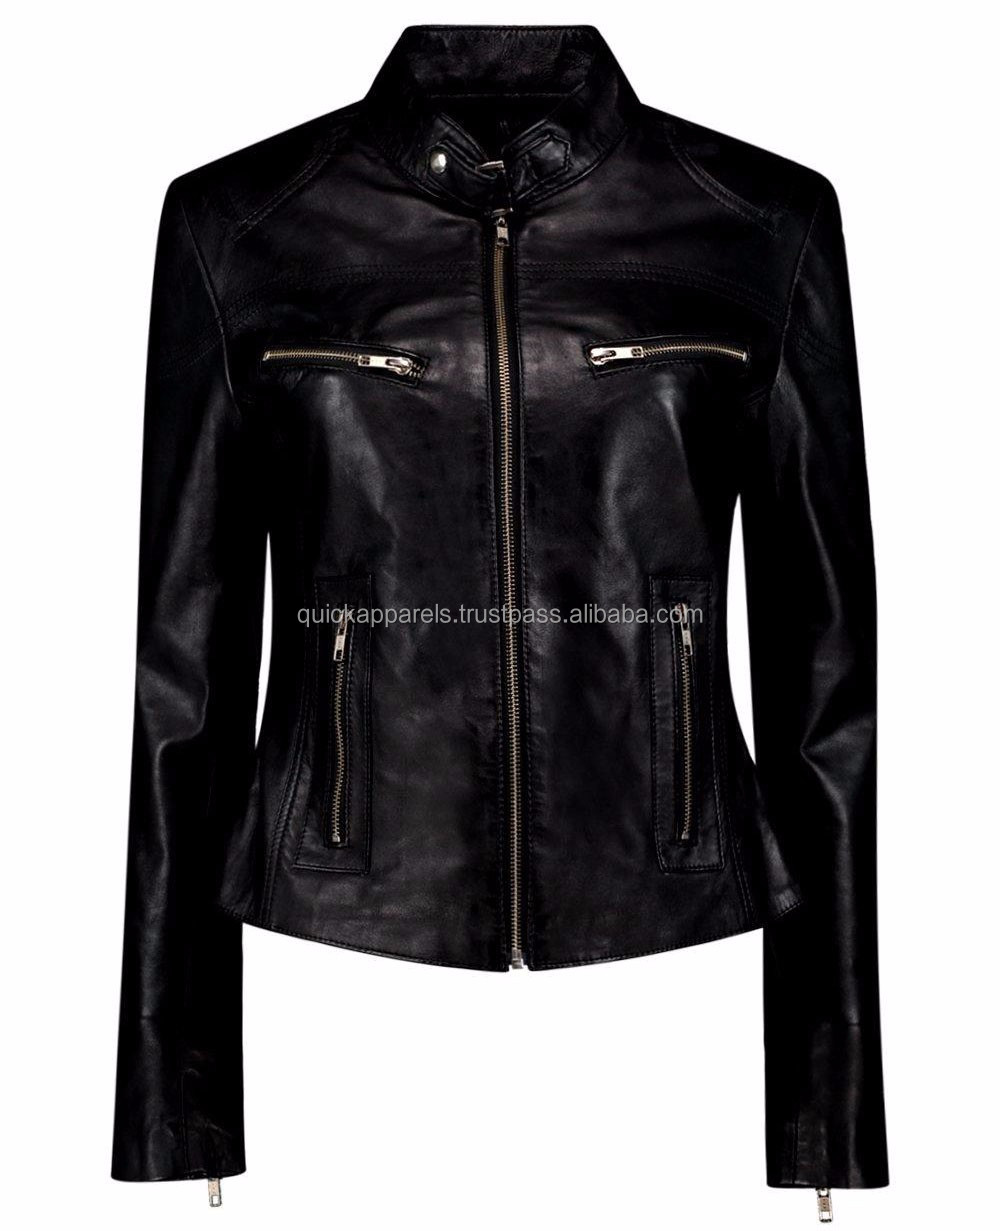 Sea View In Color Woman Women Fashion Leather Jacket